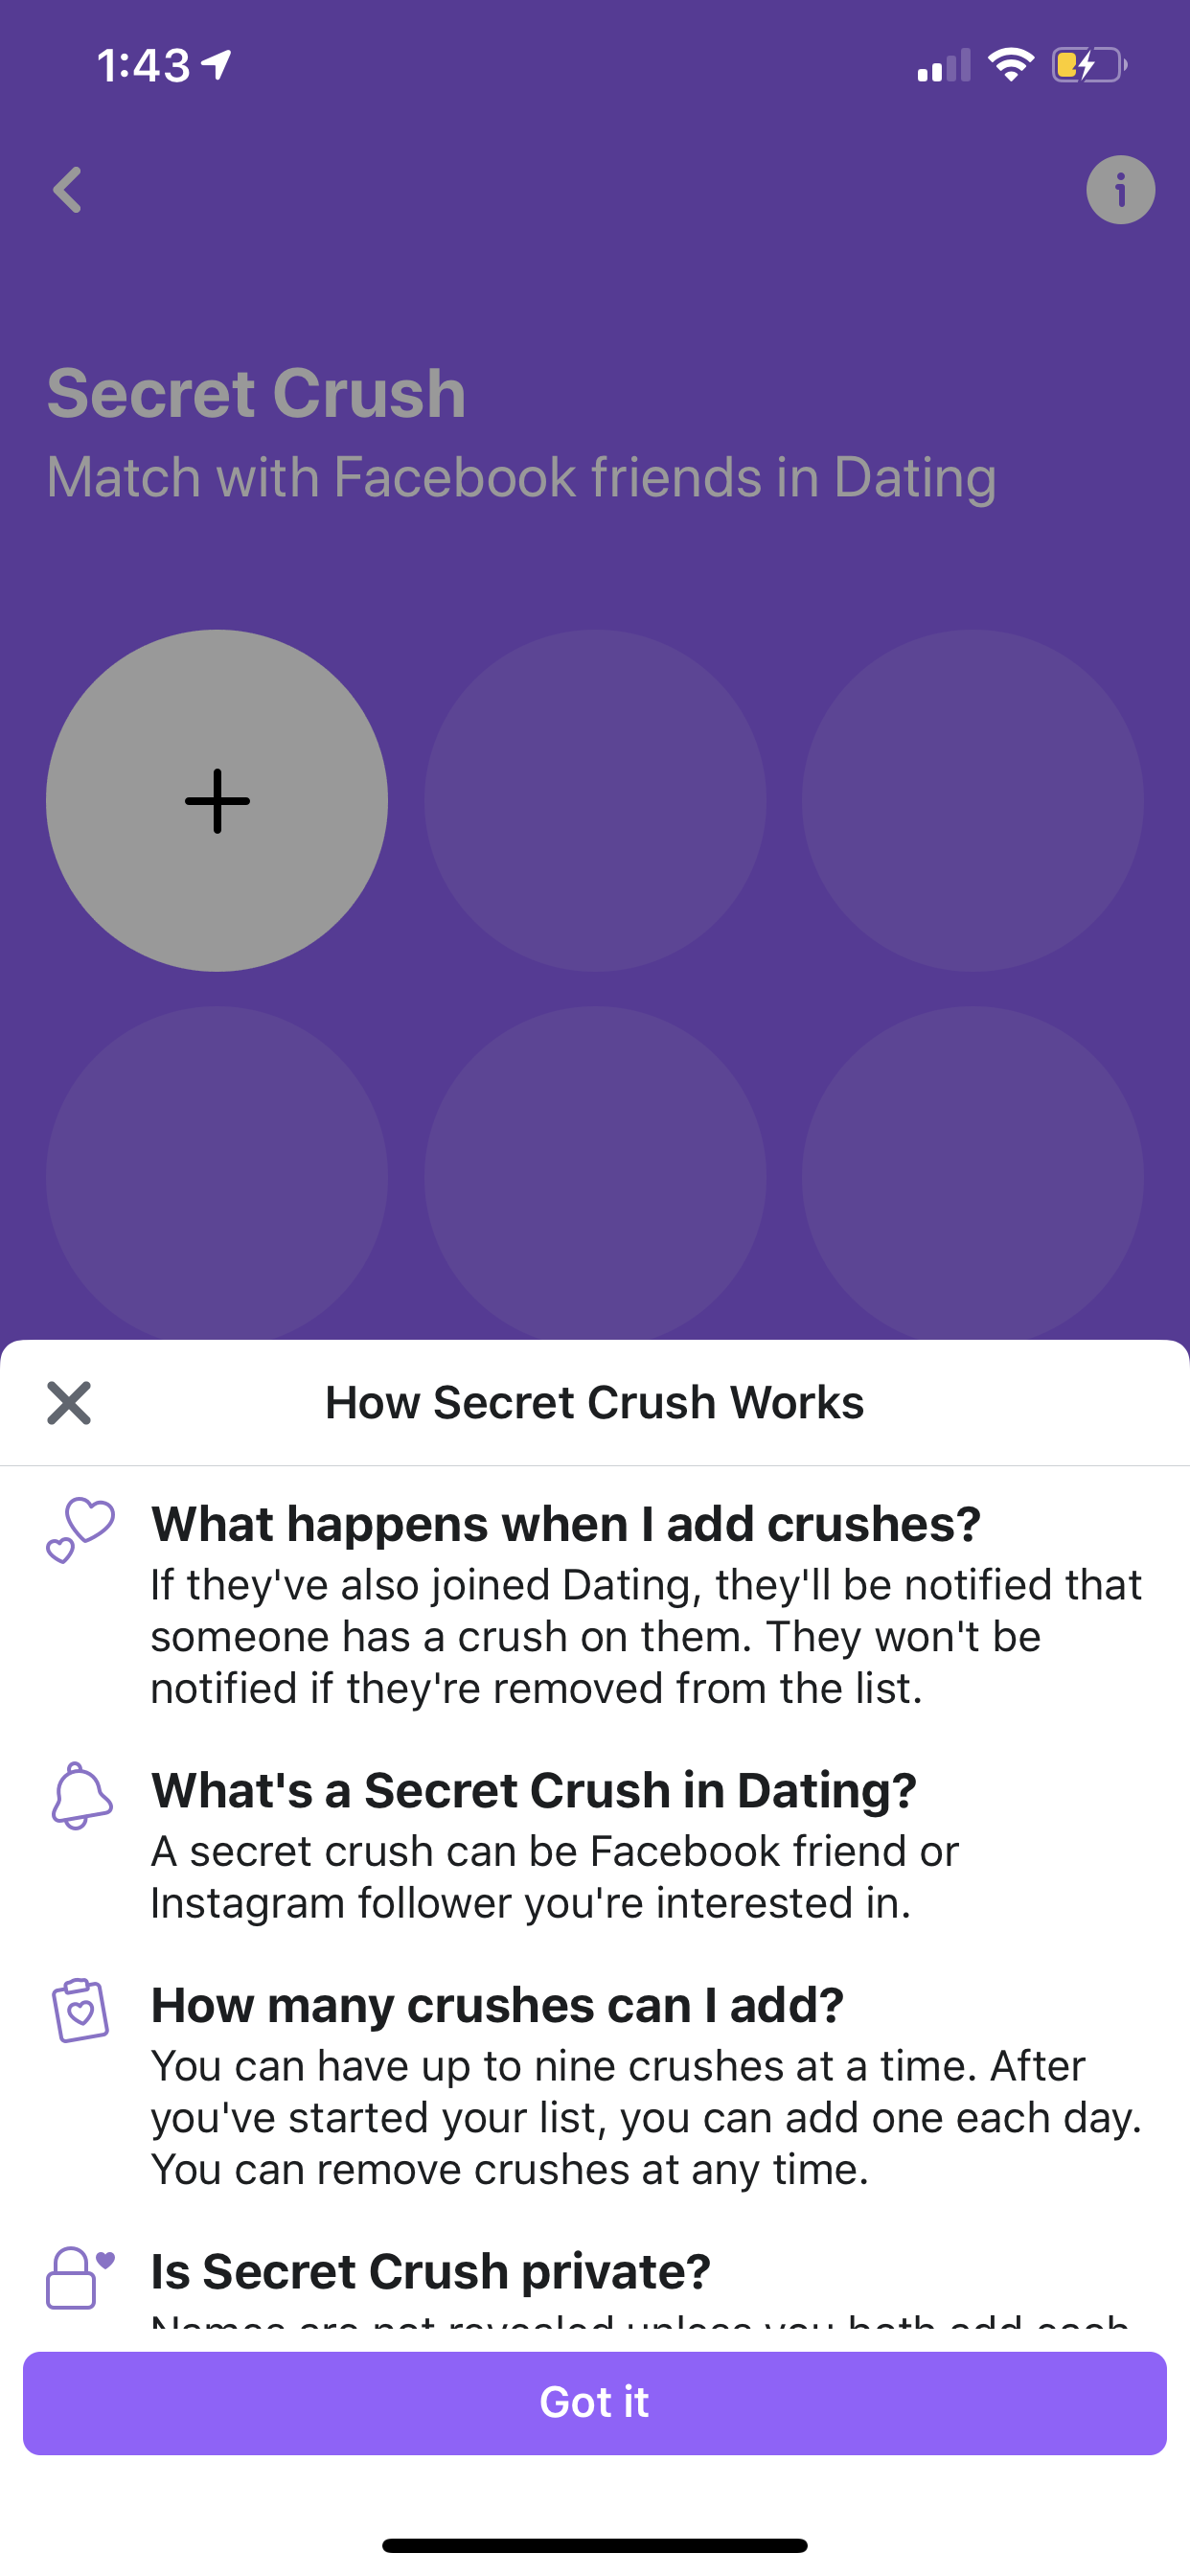 Facebook Dating Officially Launches To Select Users [HOW IT